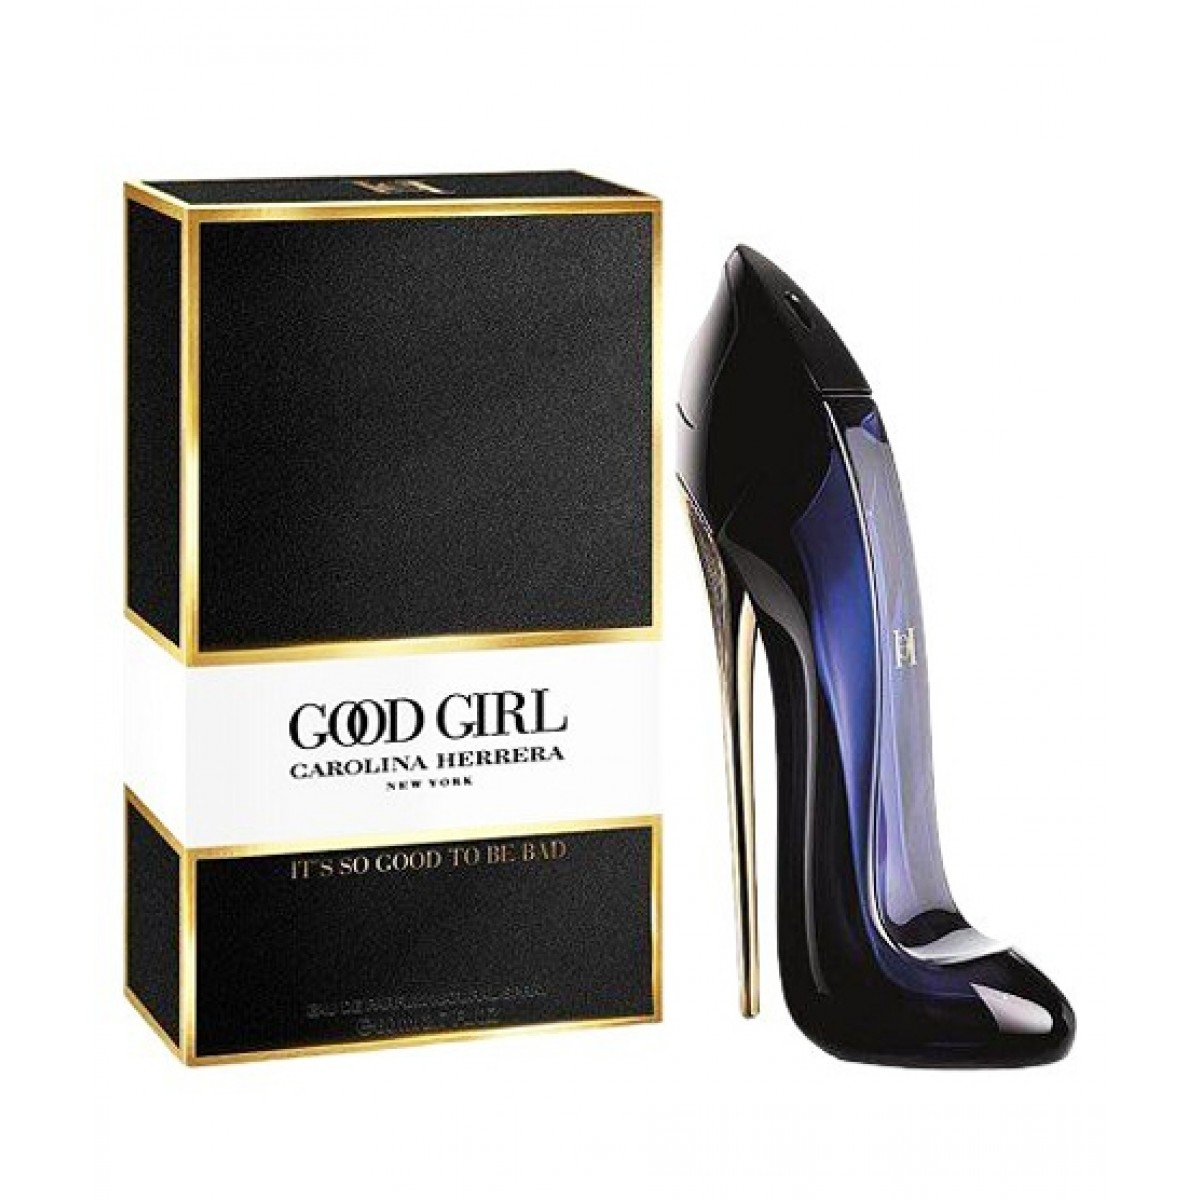 Carolina Herrera Eau De Parfum 80ml Price In Pakistan Buy Carolina